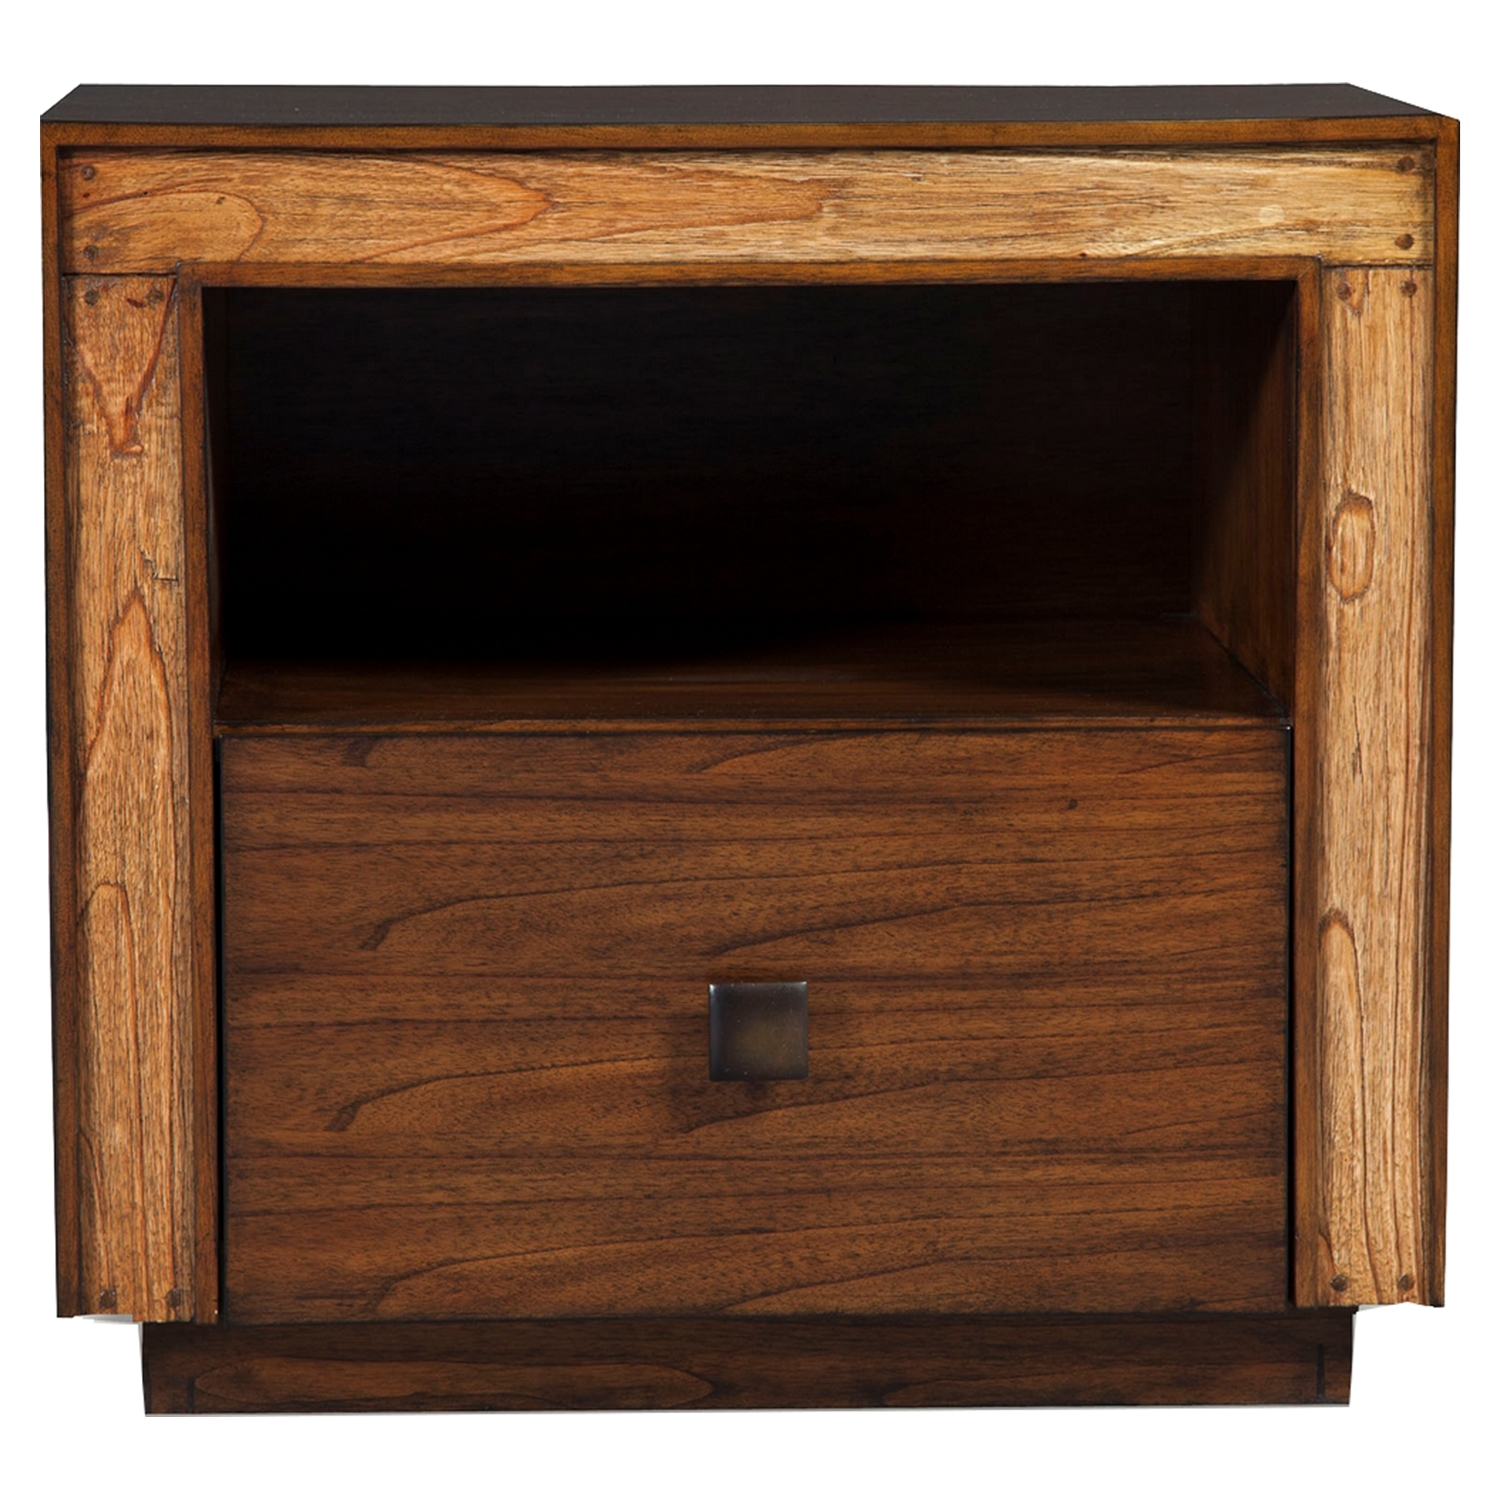 Jimbaran Bay Nightstand - Drawer, Shelf, Tobacco - ALP-ORI-811-02